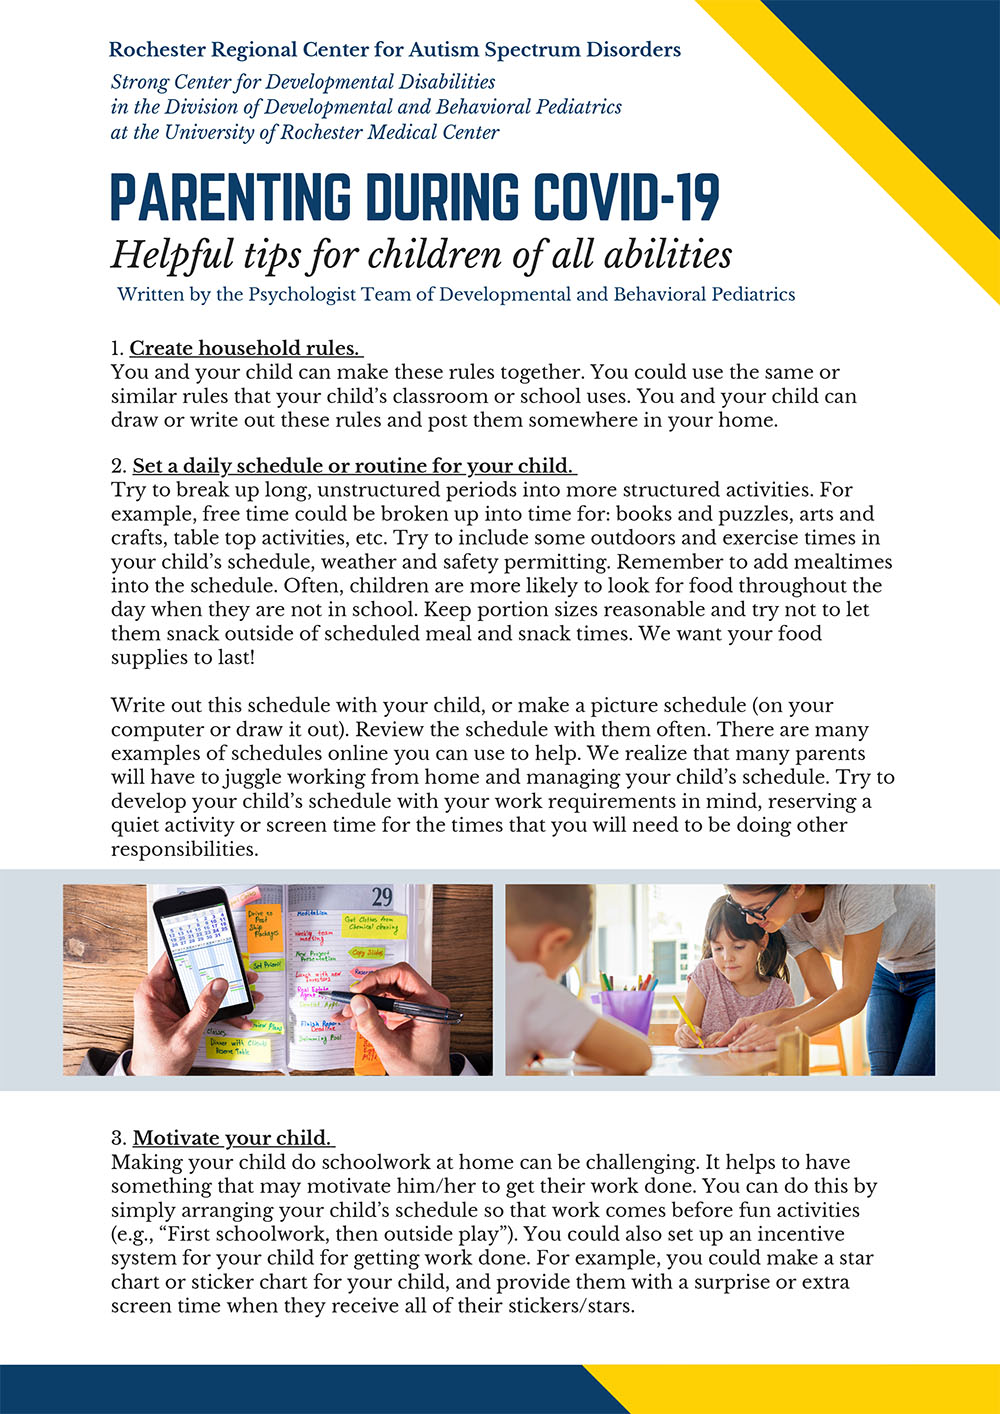 Parenting During Covid-19 Tip Sheet